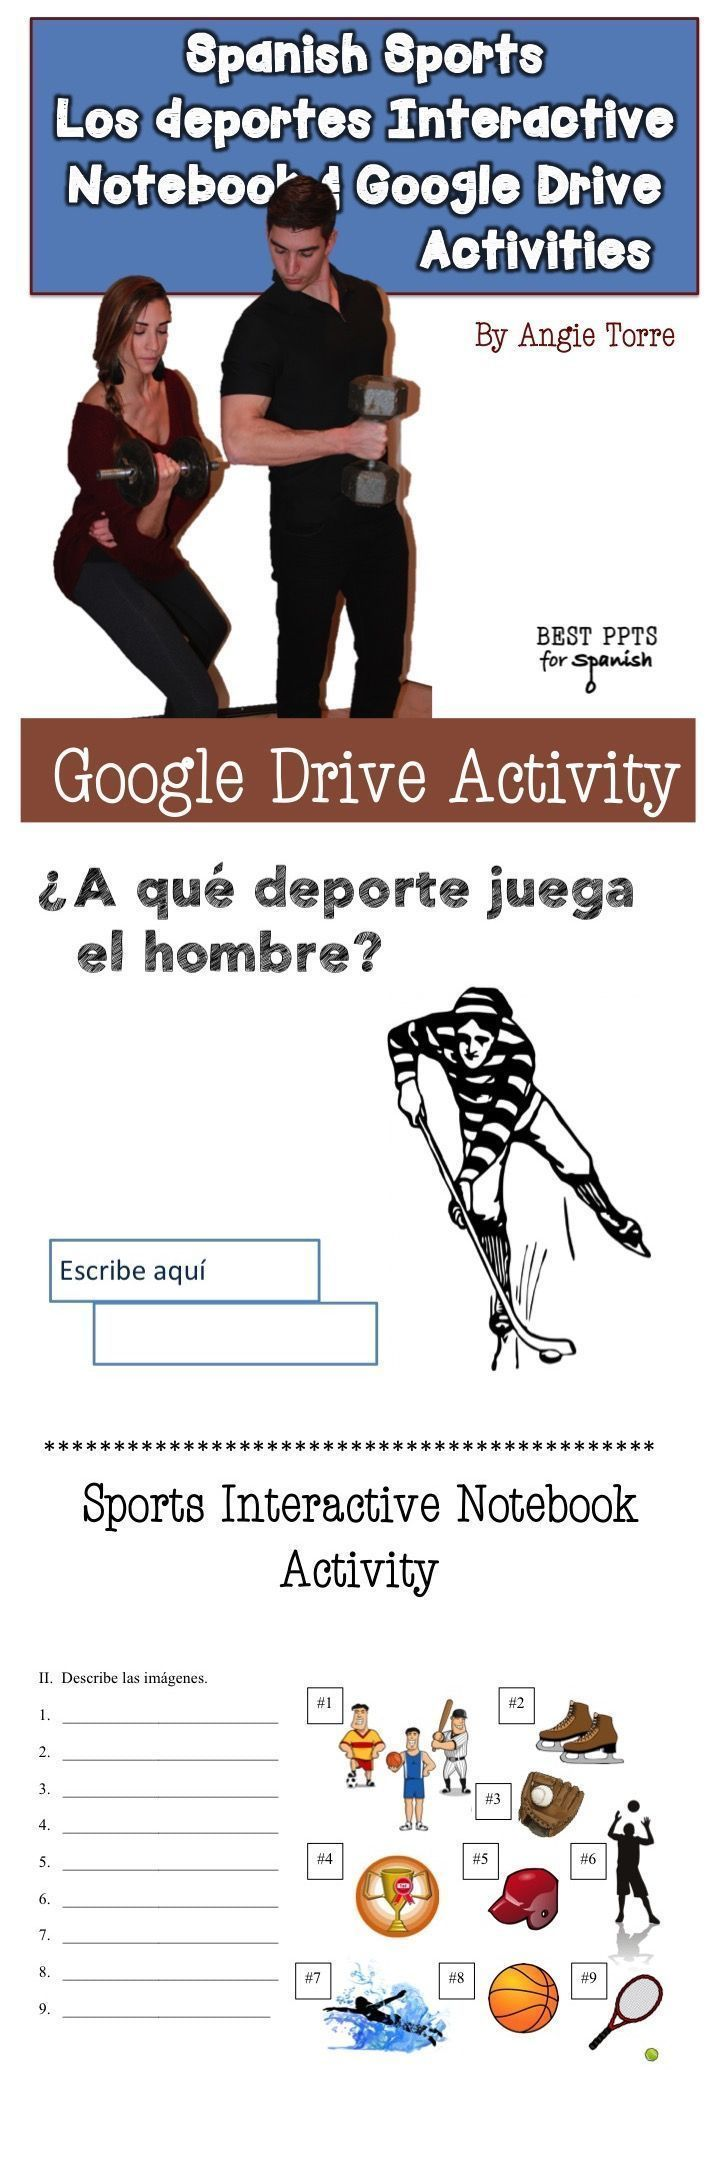 Workbooks notes in spanish intermediate worksheets free : 17 best Spanish Sports images on Pinterest | Spanish lessons ...